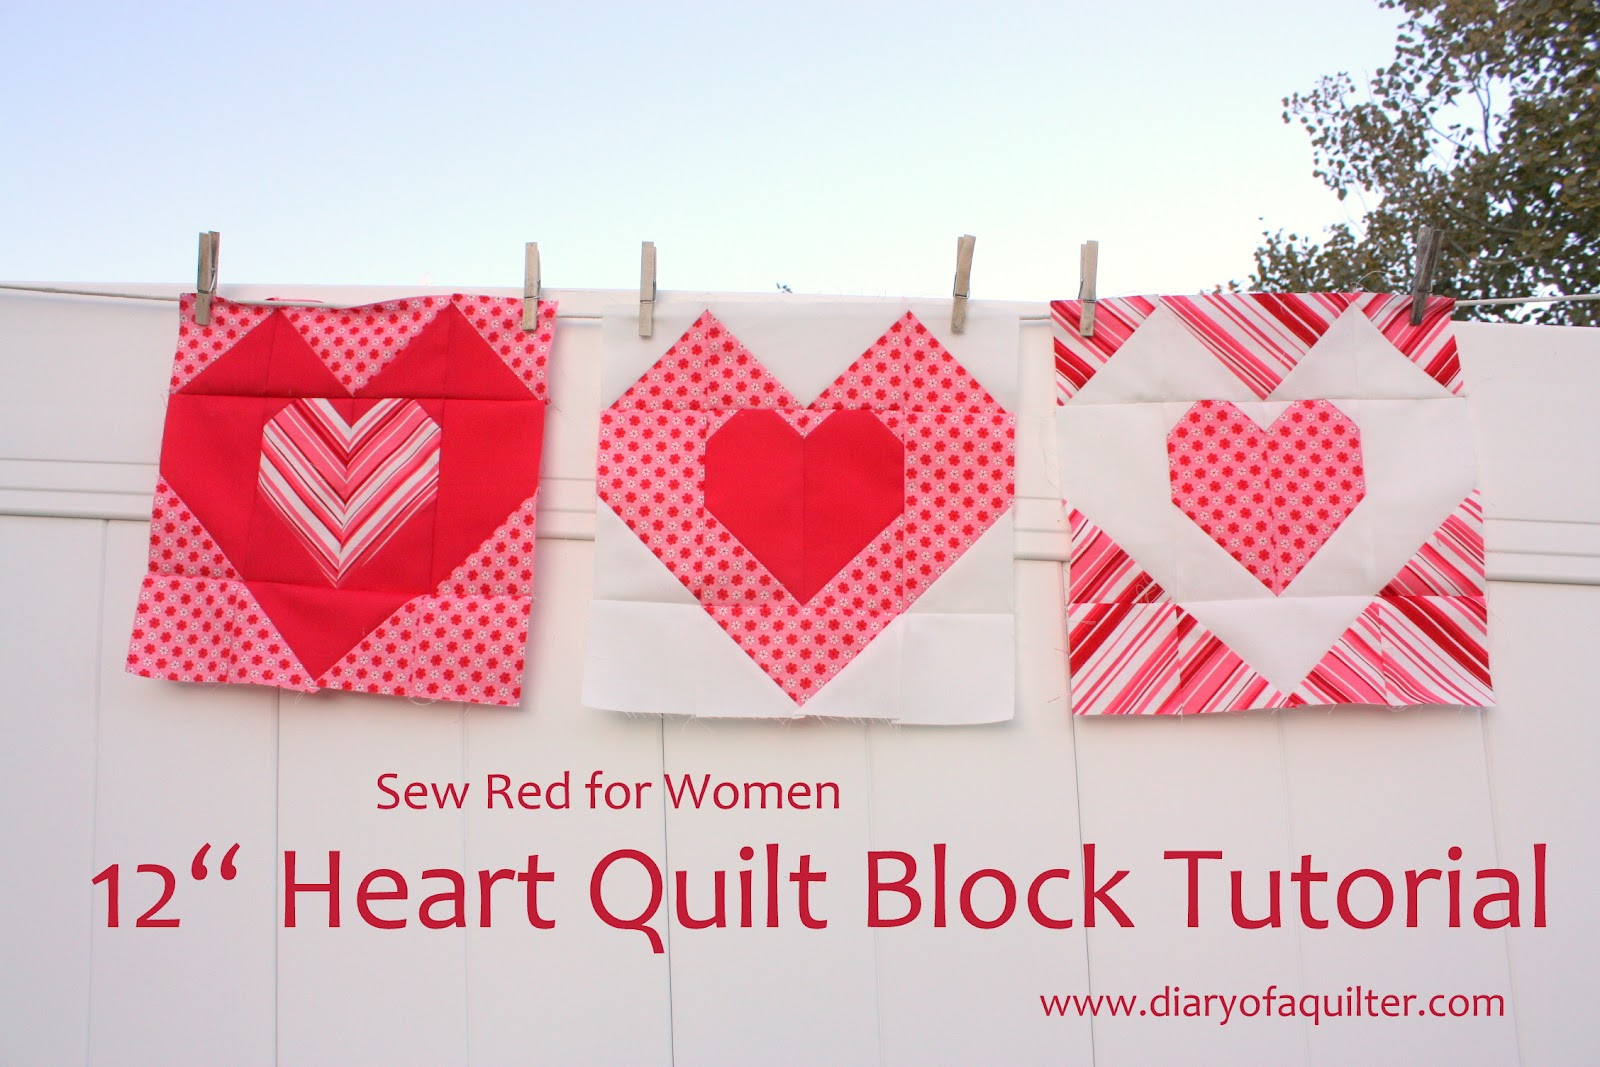 Be Good To Your Heart Quilt Block Tutorial Diary Of A Quilter A